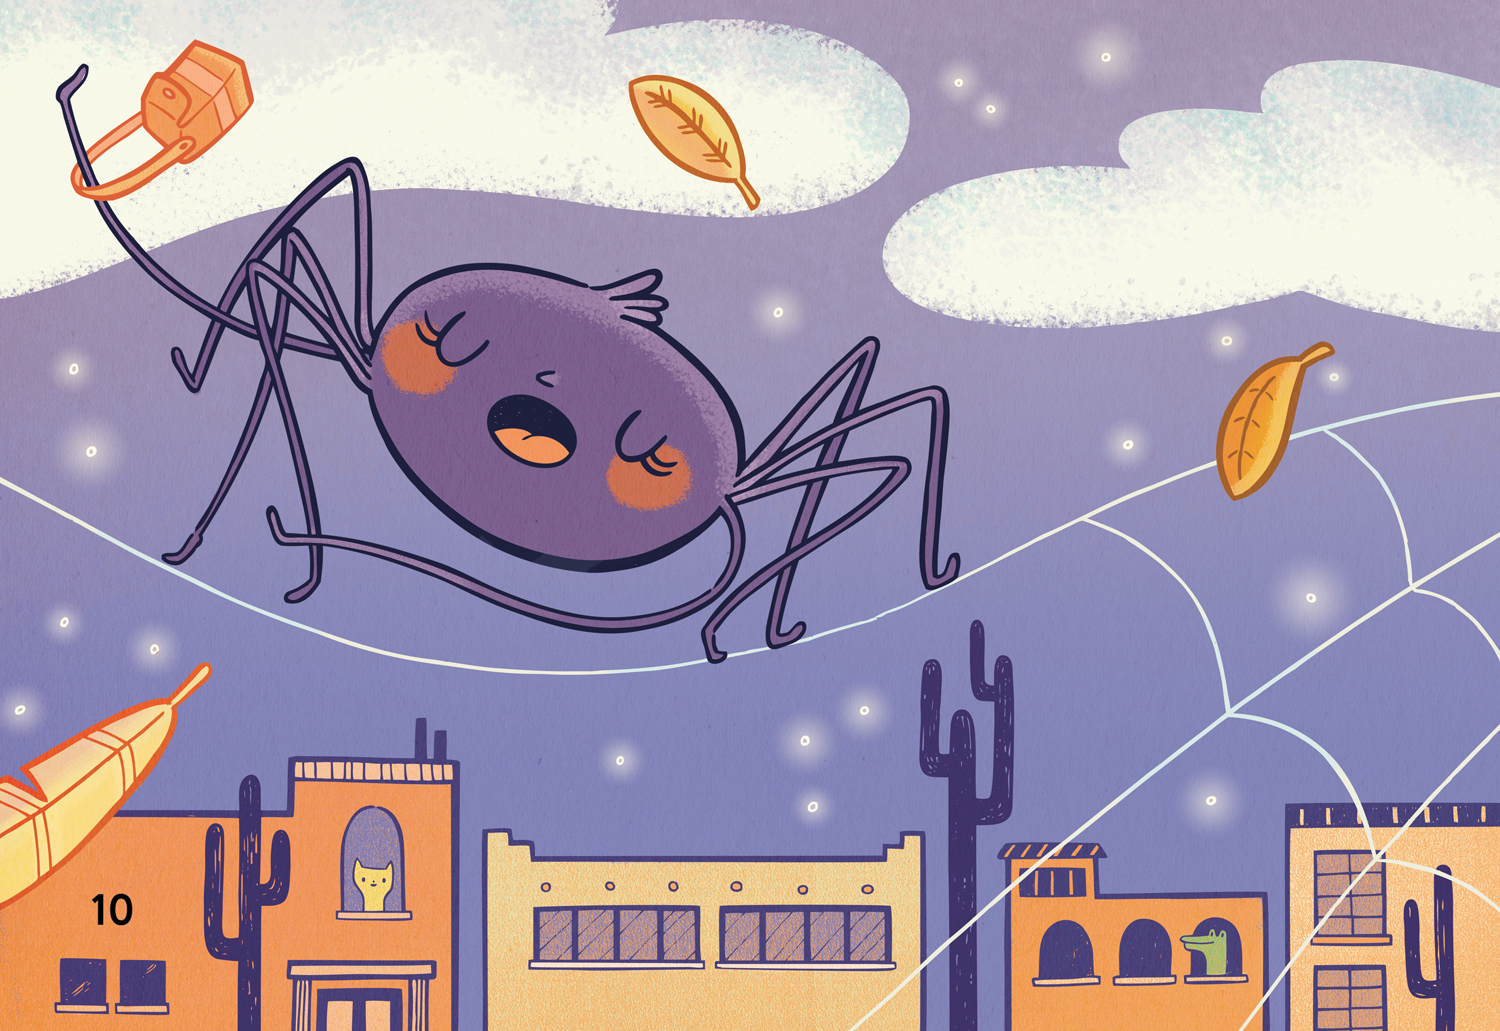 Doña Araña, an illustration for  ¡Di Algo! , my first children's book project.